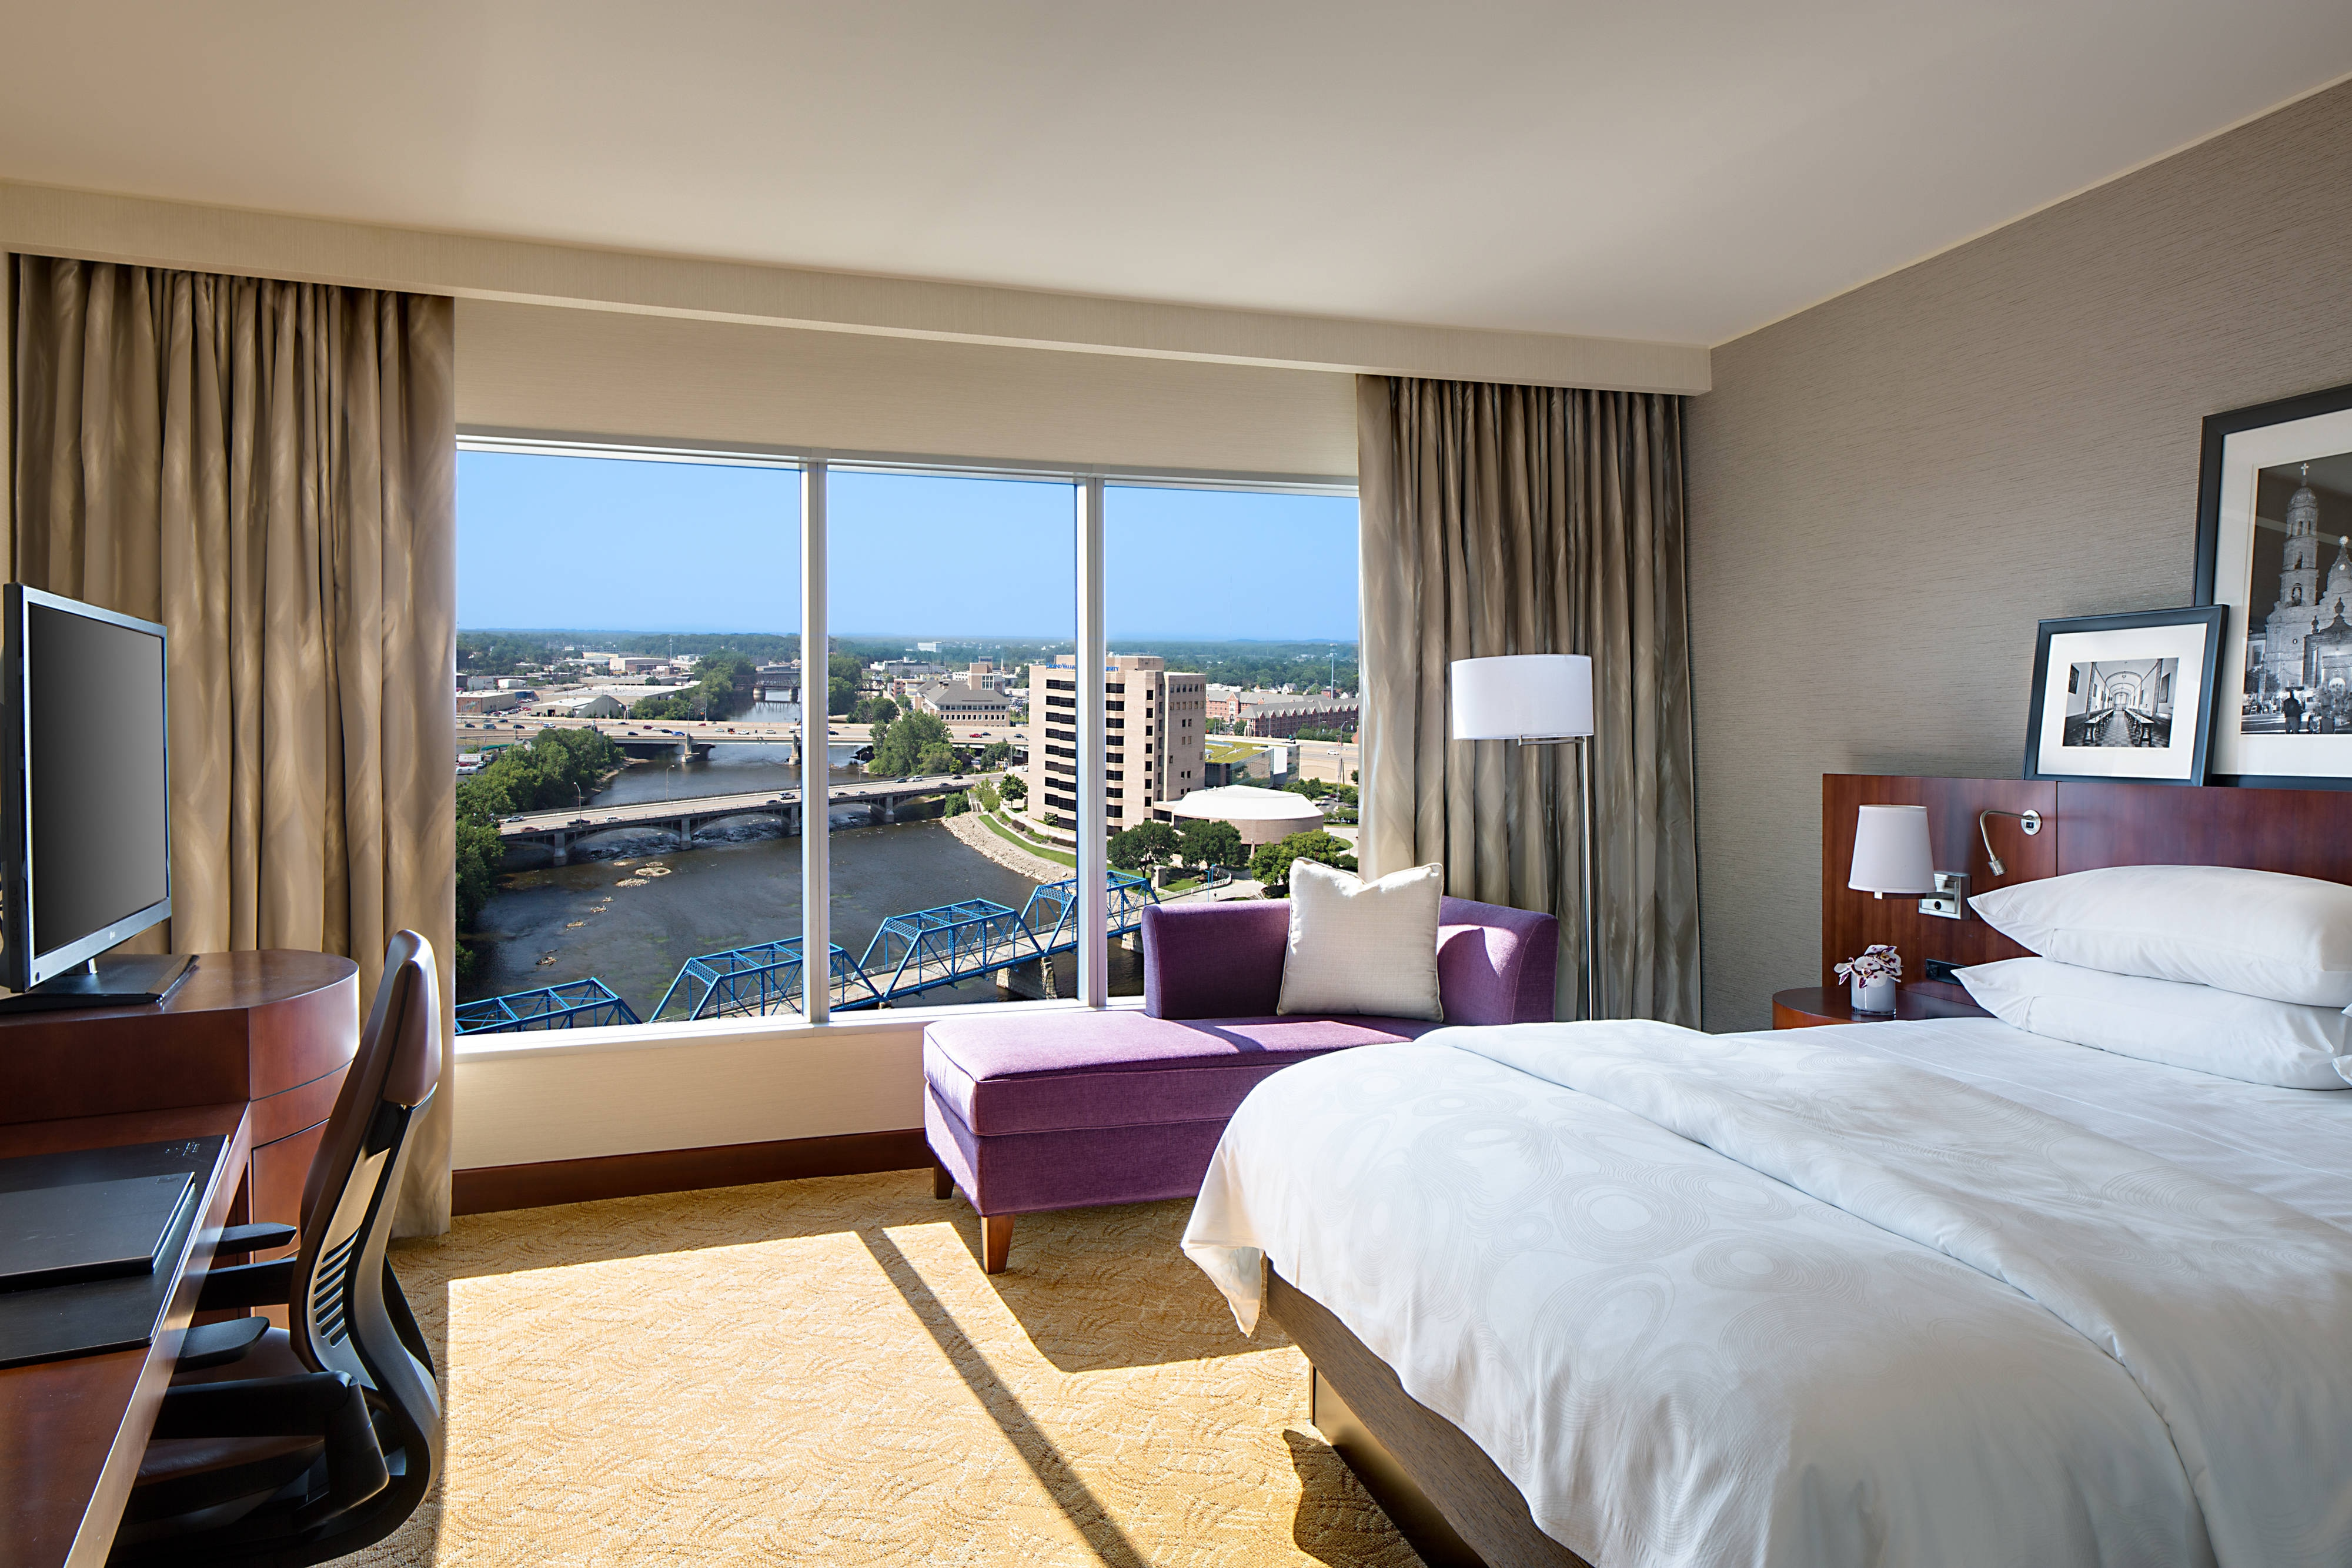 Luxury Hotel In Grand Rapids Near Van Andel Arena | JW Marriott